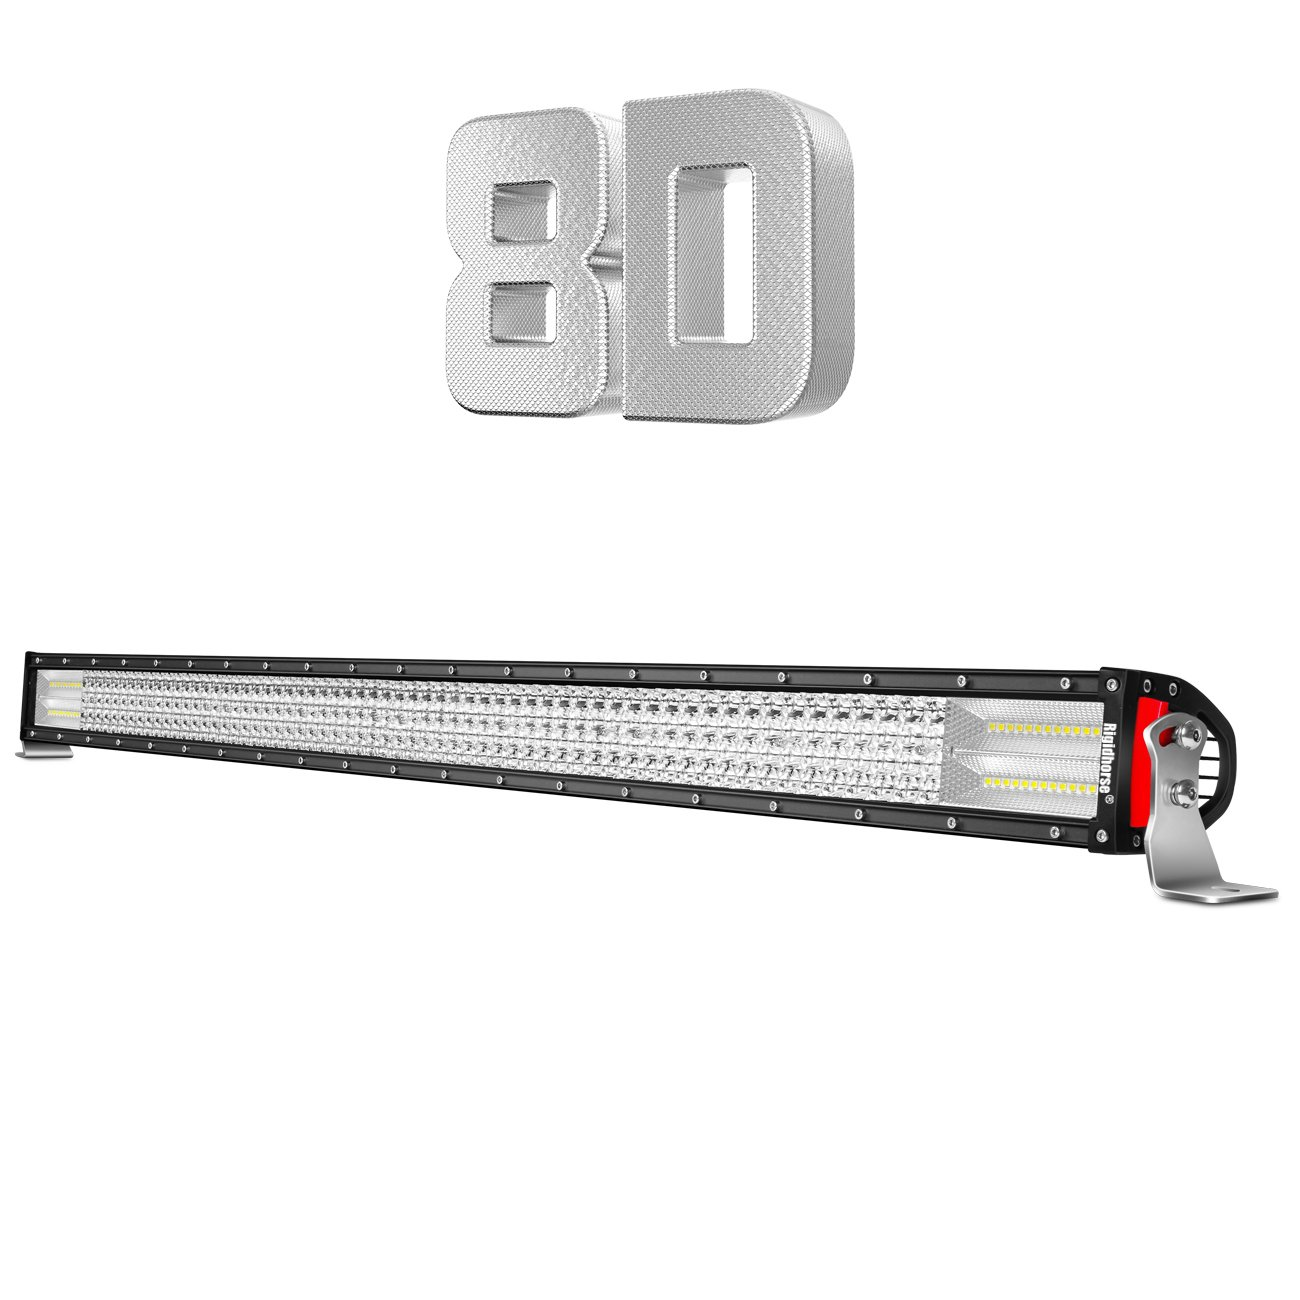 Rigidhorse LED Light Bar Quad Row 42Inch 744W Flood Spot Combo Lights Waterproof IP67 for Off Road Lighting Jeep and Trucks SUV by Rigidhorse